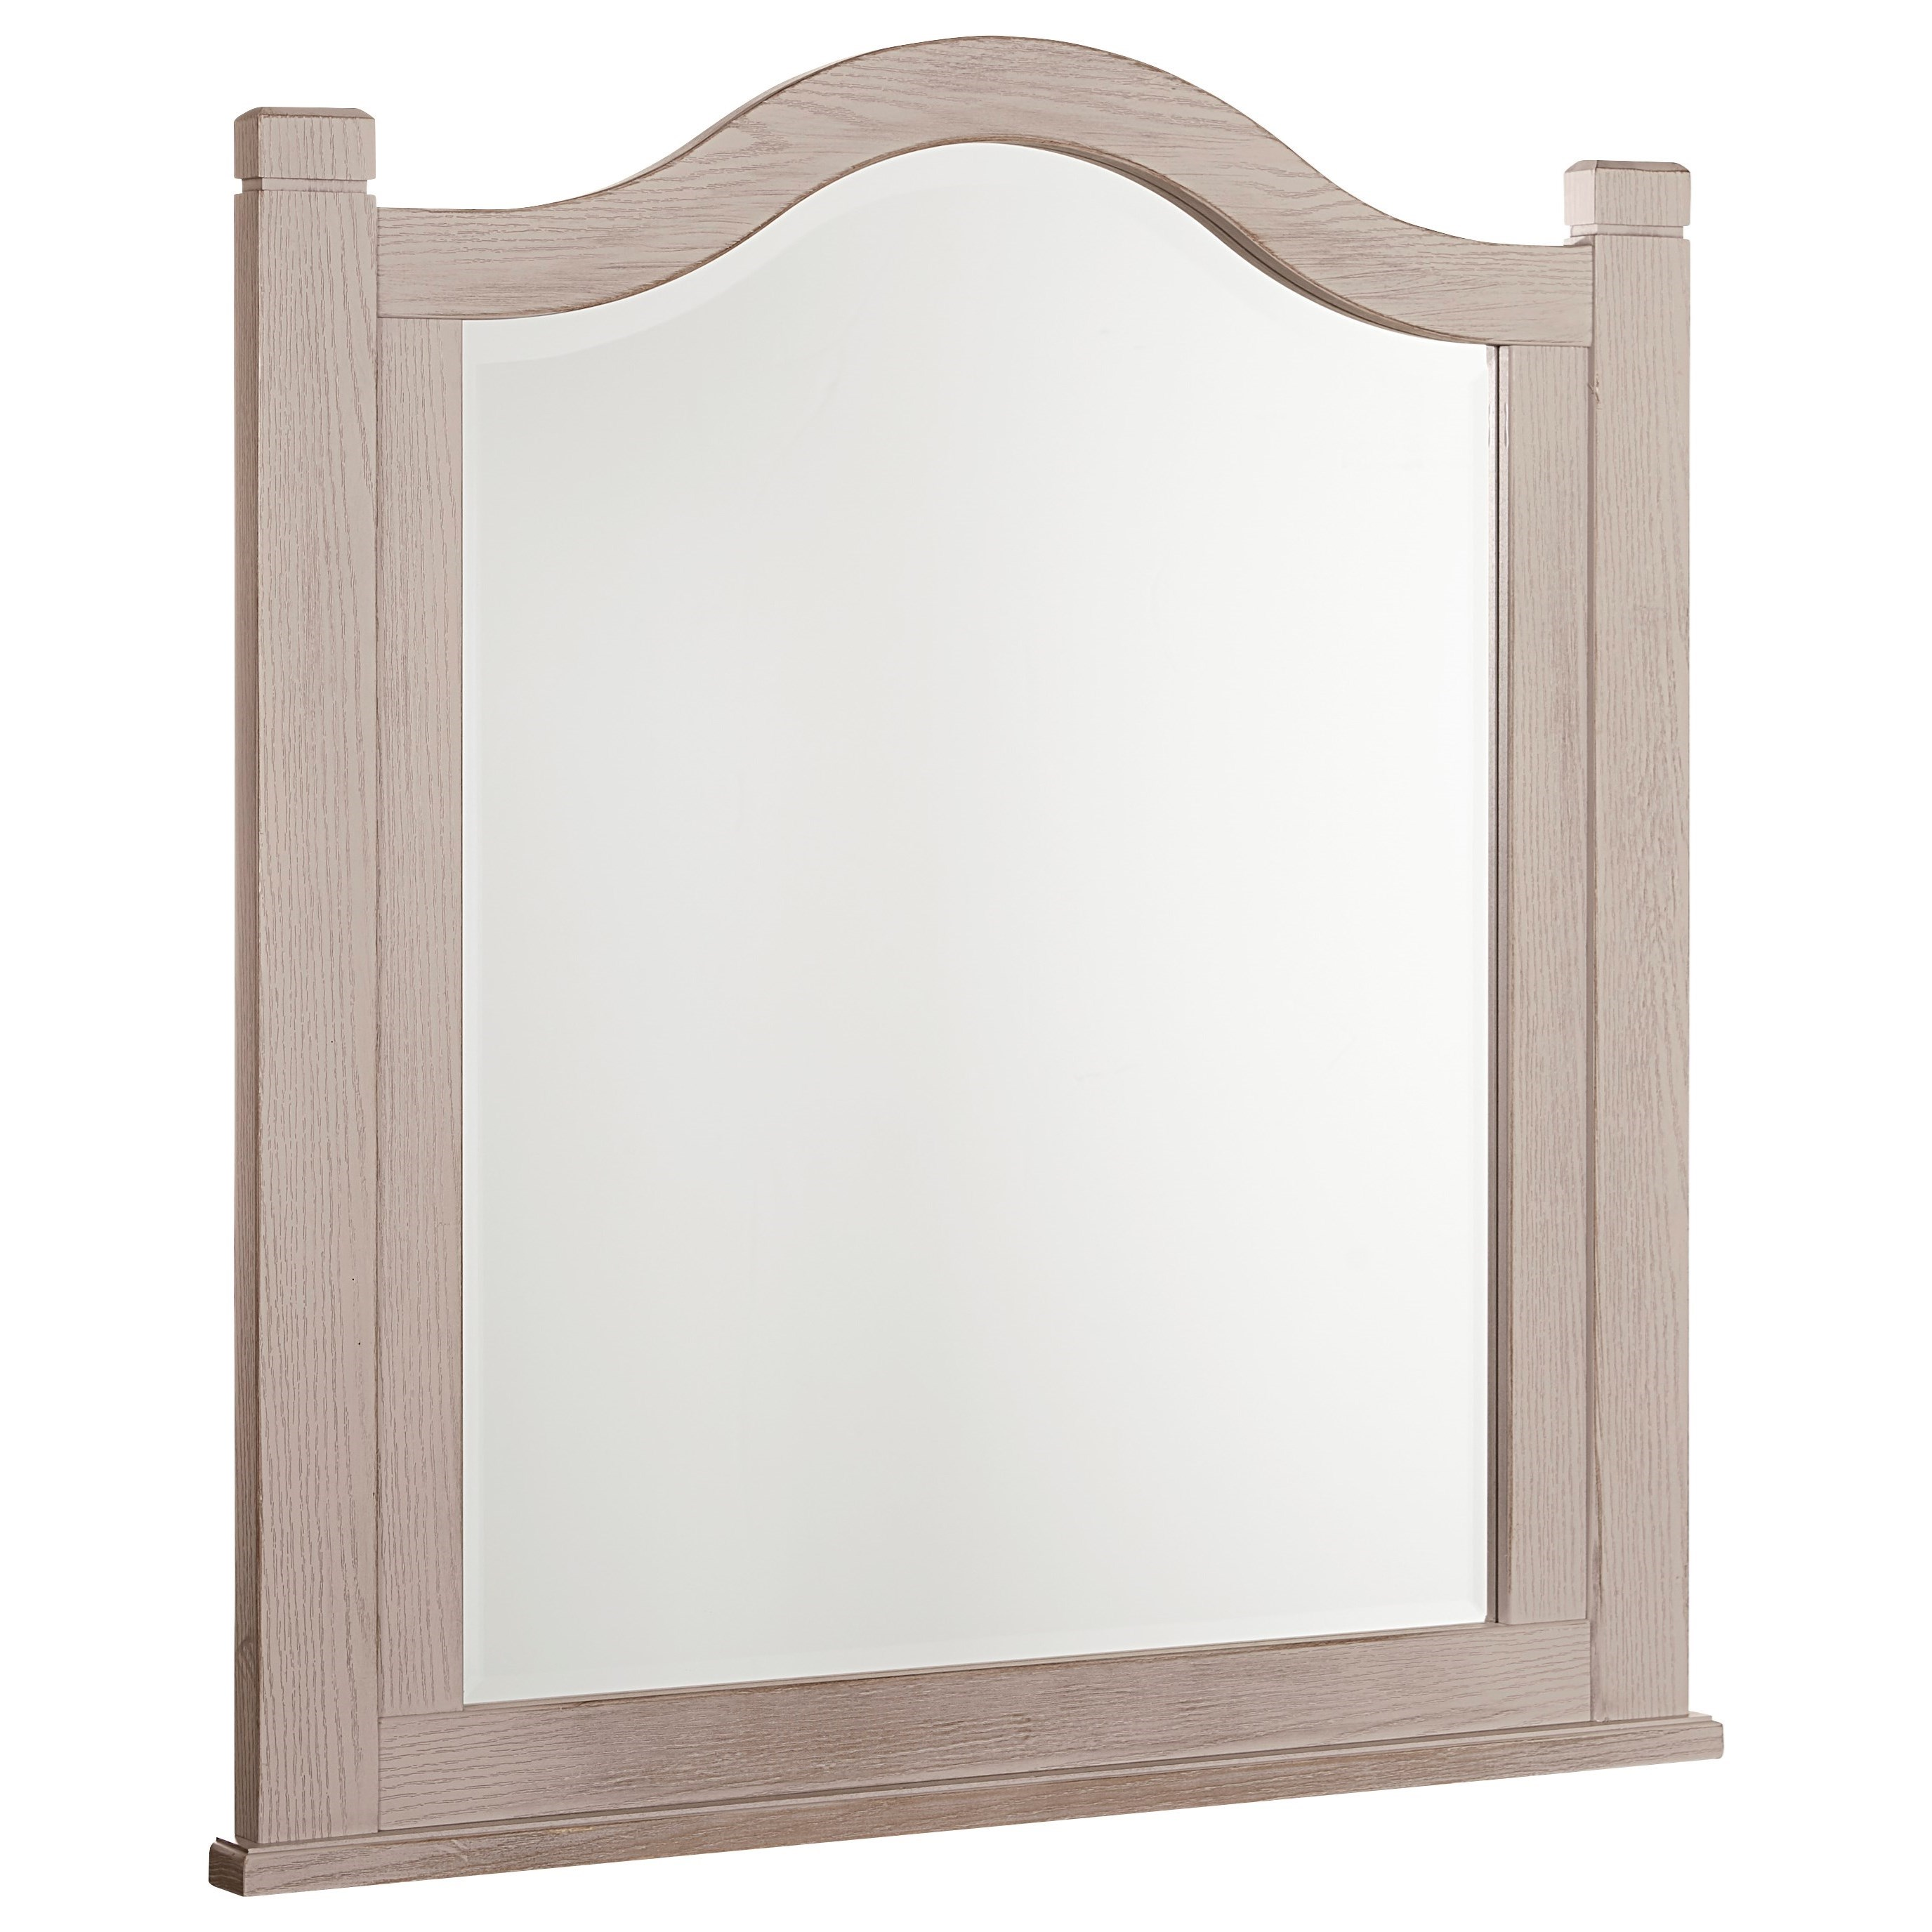 Bungalow Arch Mirror by Laurel Mercantile Co. at Johnny Janosik